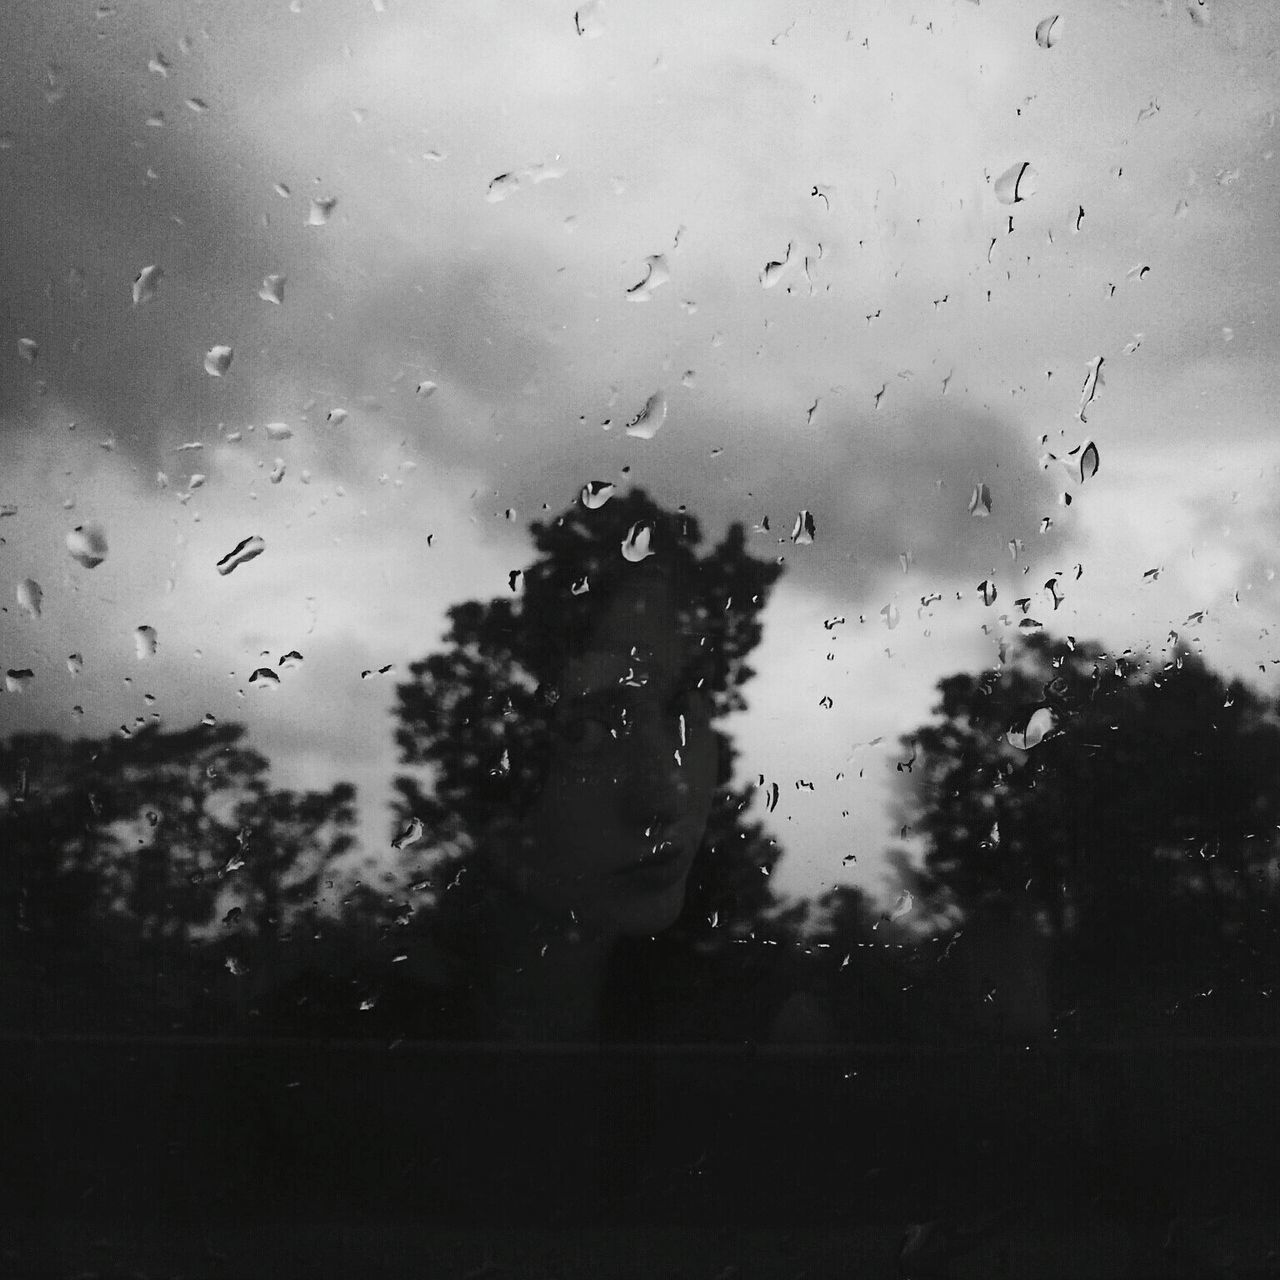 drop, window, transparent, rain, wet, glass - material, raindrop, water, sky, weather, no people, rainy season, focus on foreground, indoors, looking through window, day, nature, close-up, tree